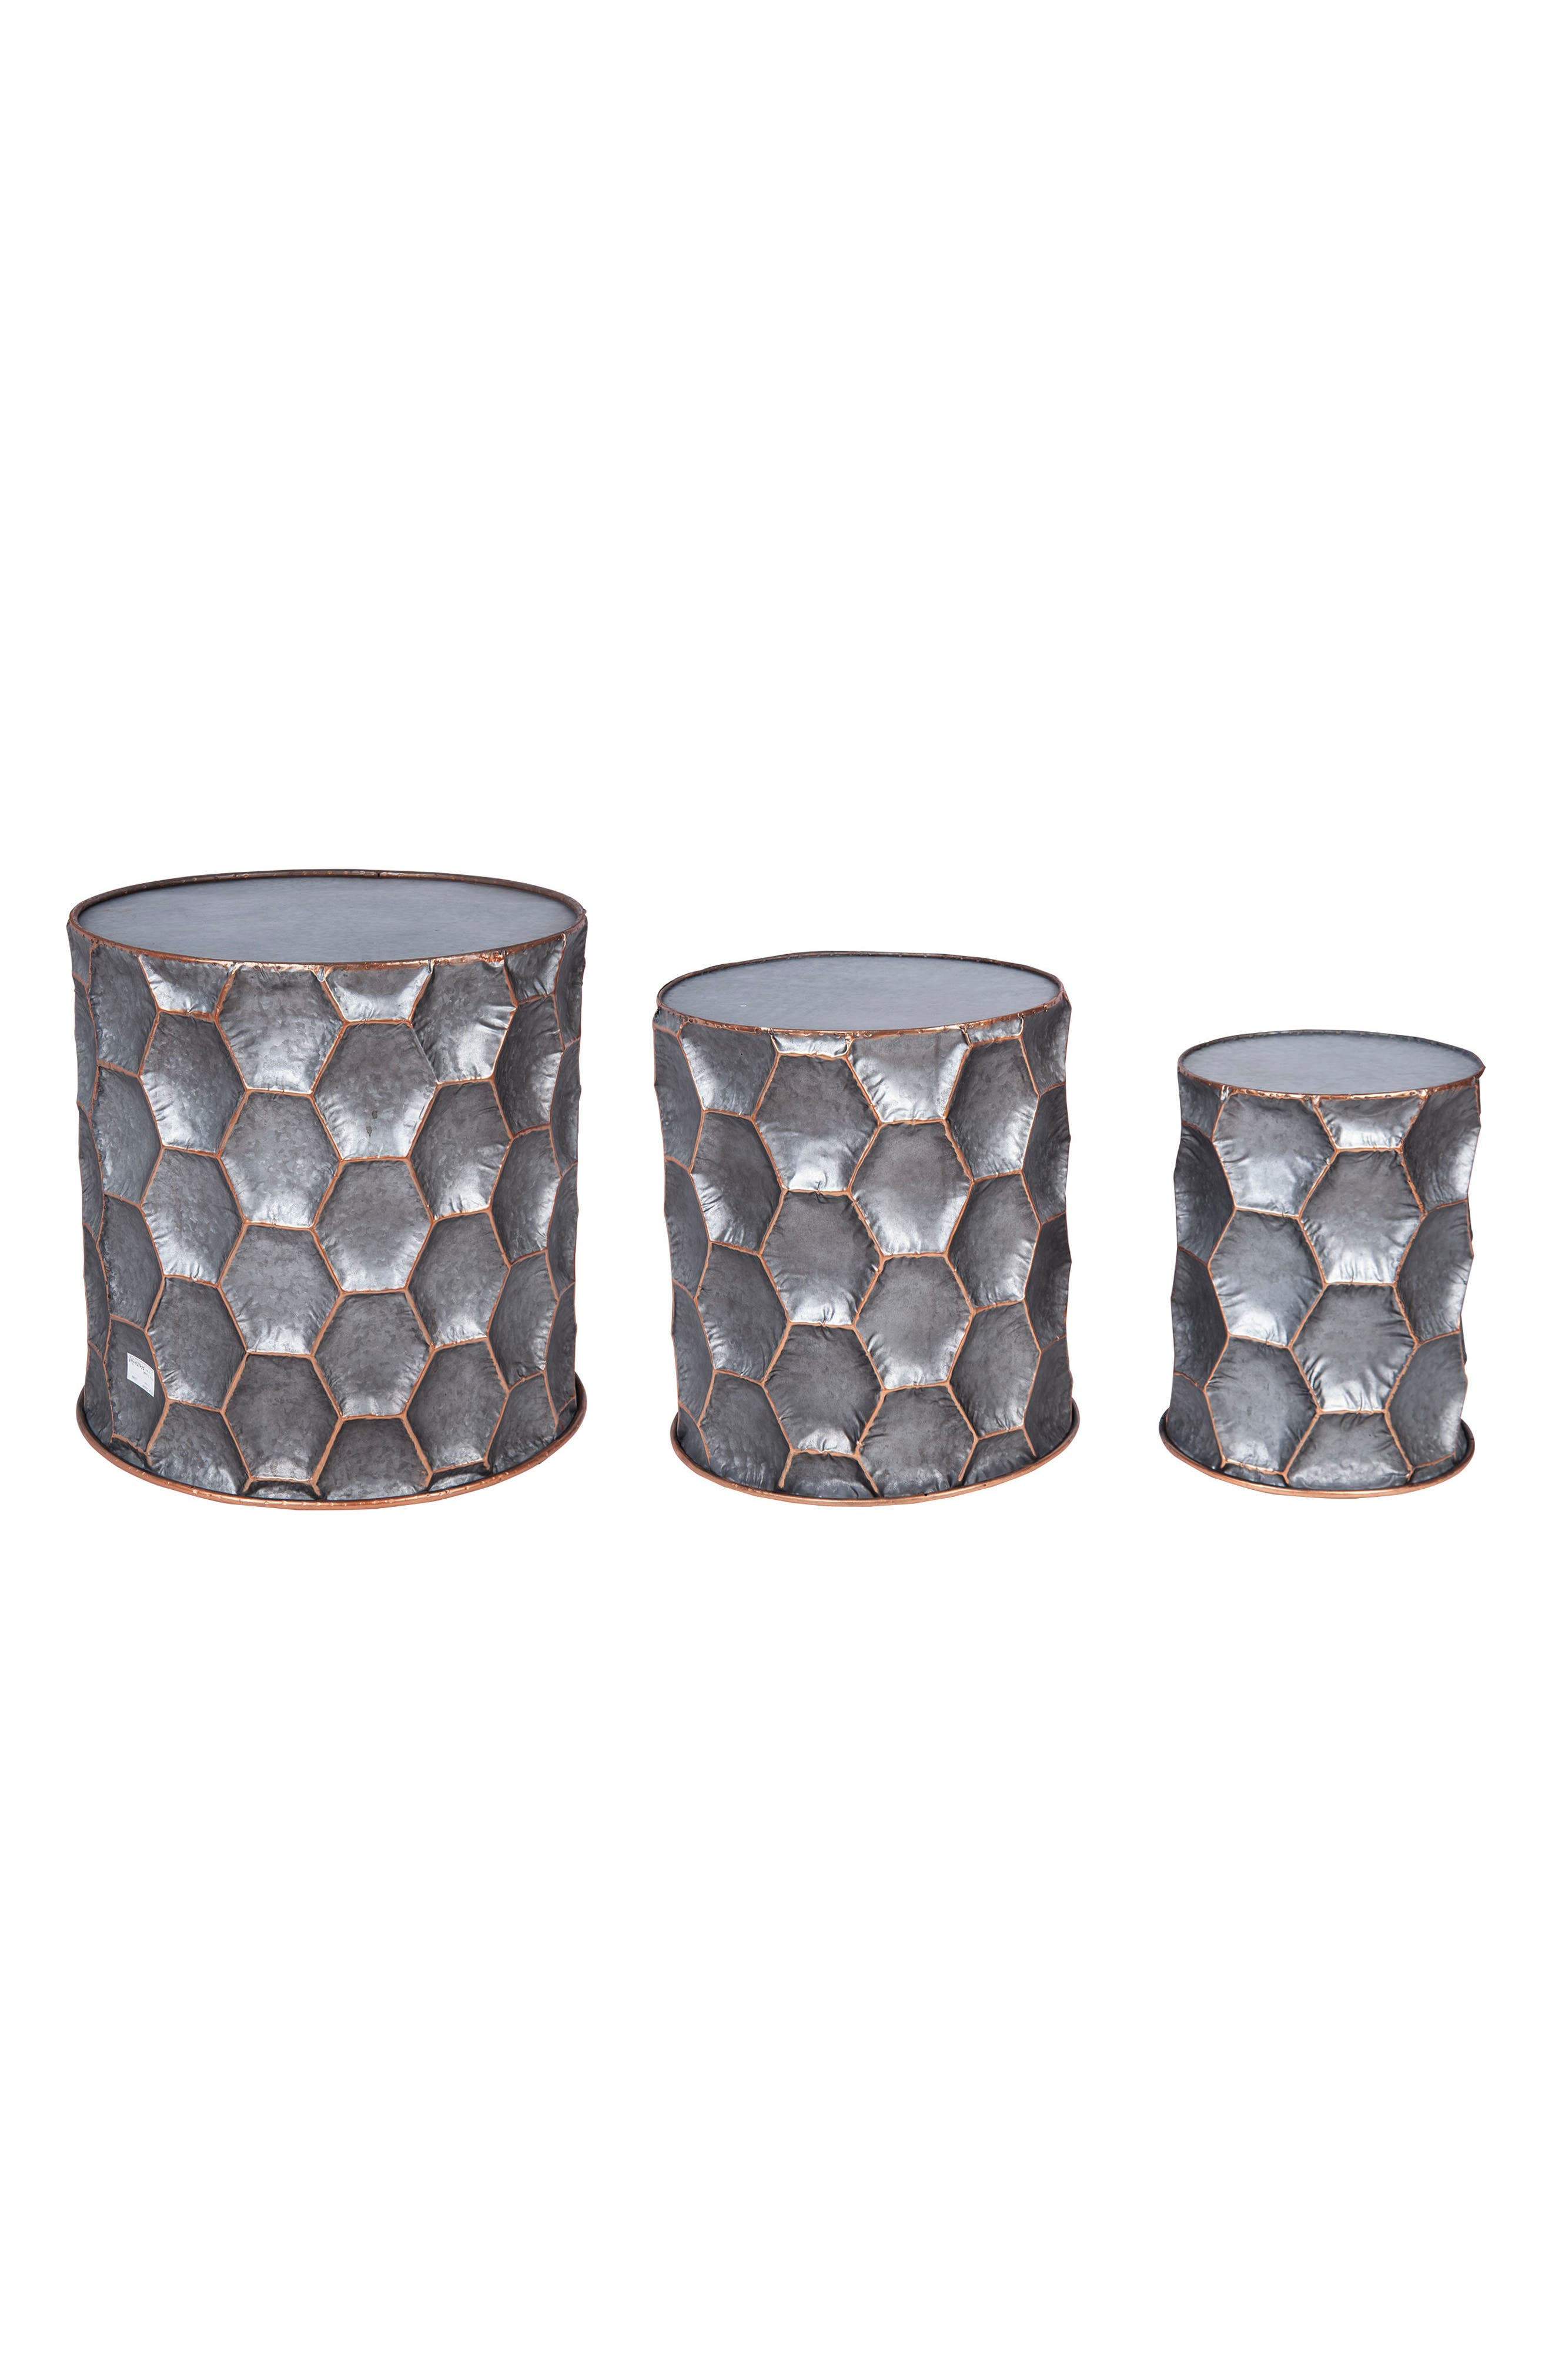 Alternate Image 1 Selected - Foreside Honeycomb Set of 3 Side Tables